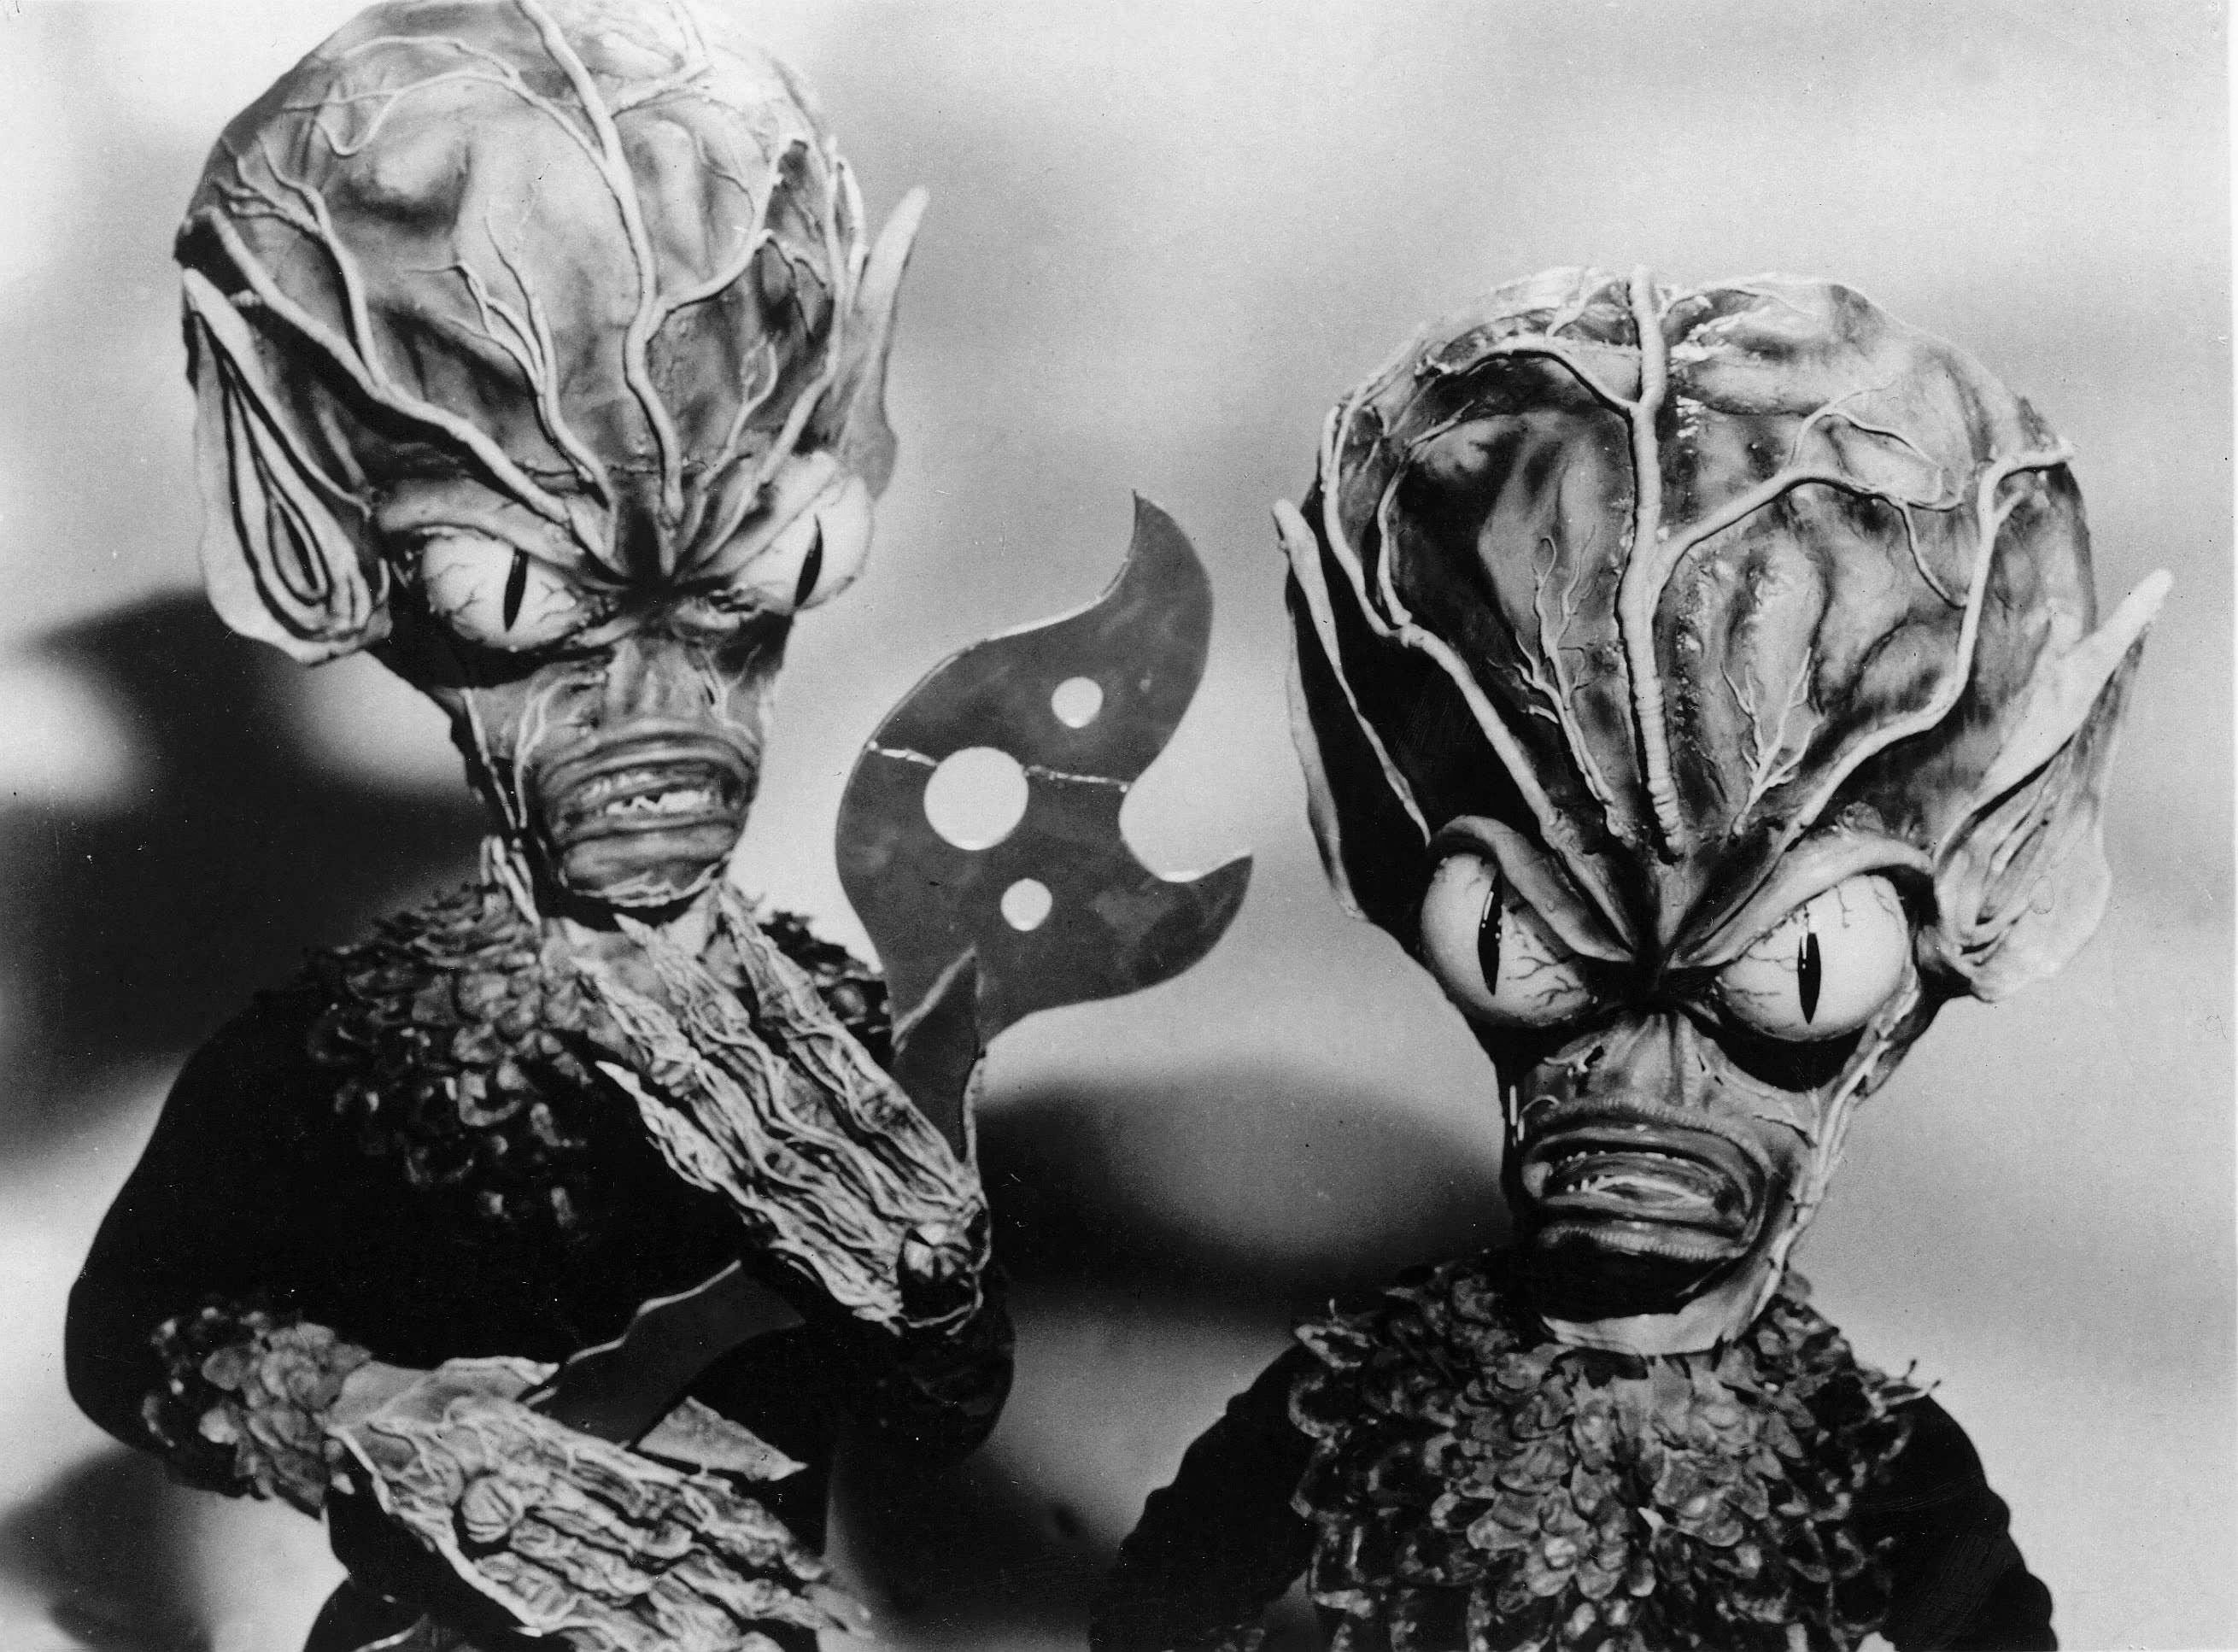 Alien (Invasion of the Saucer Men)